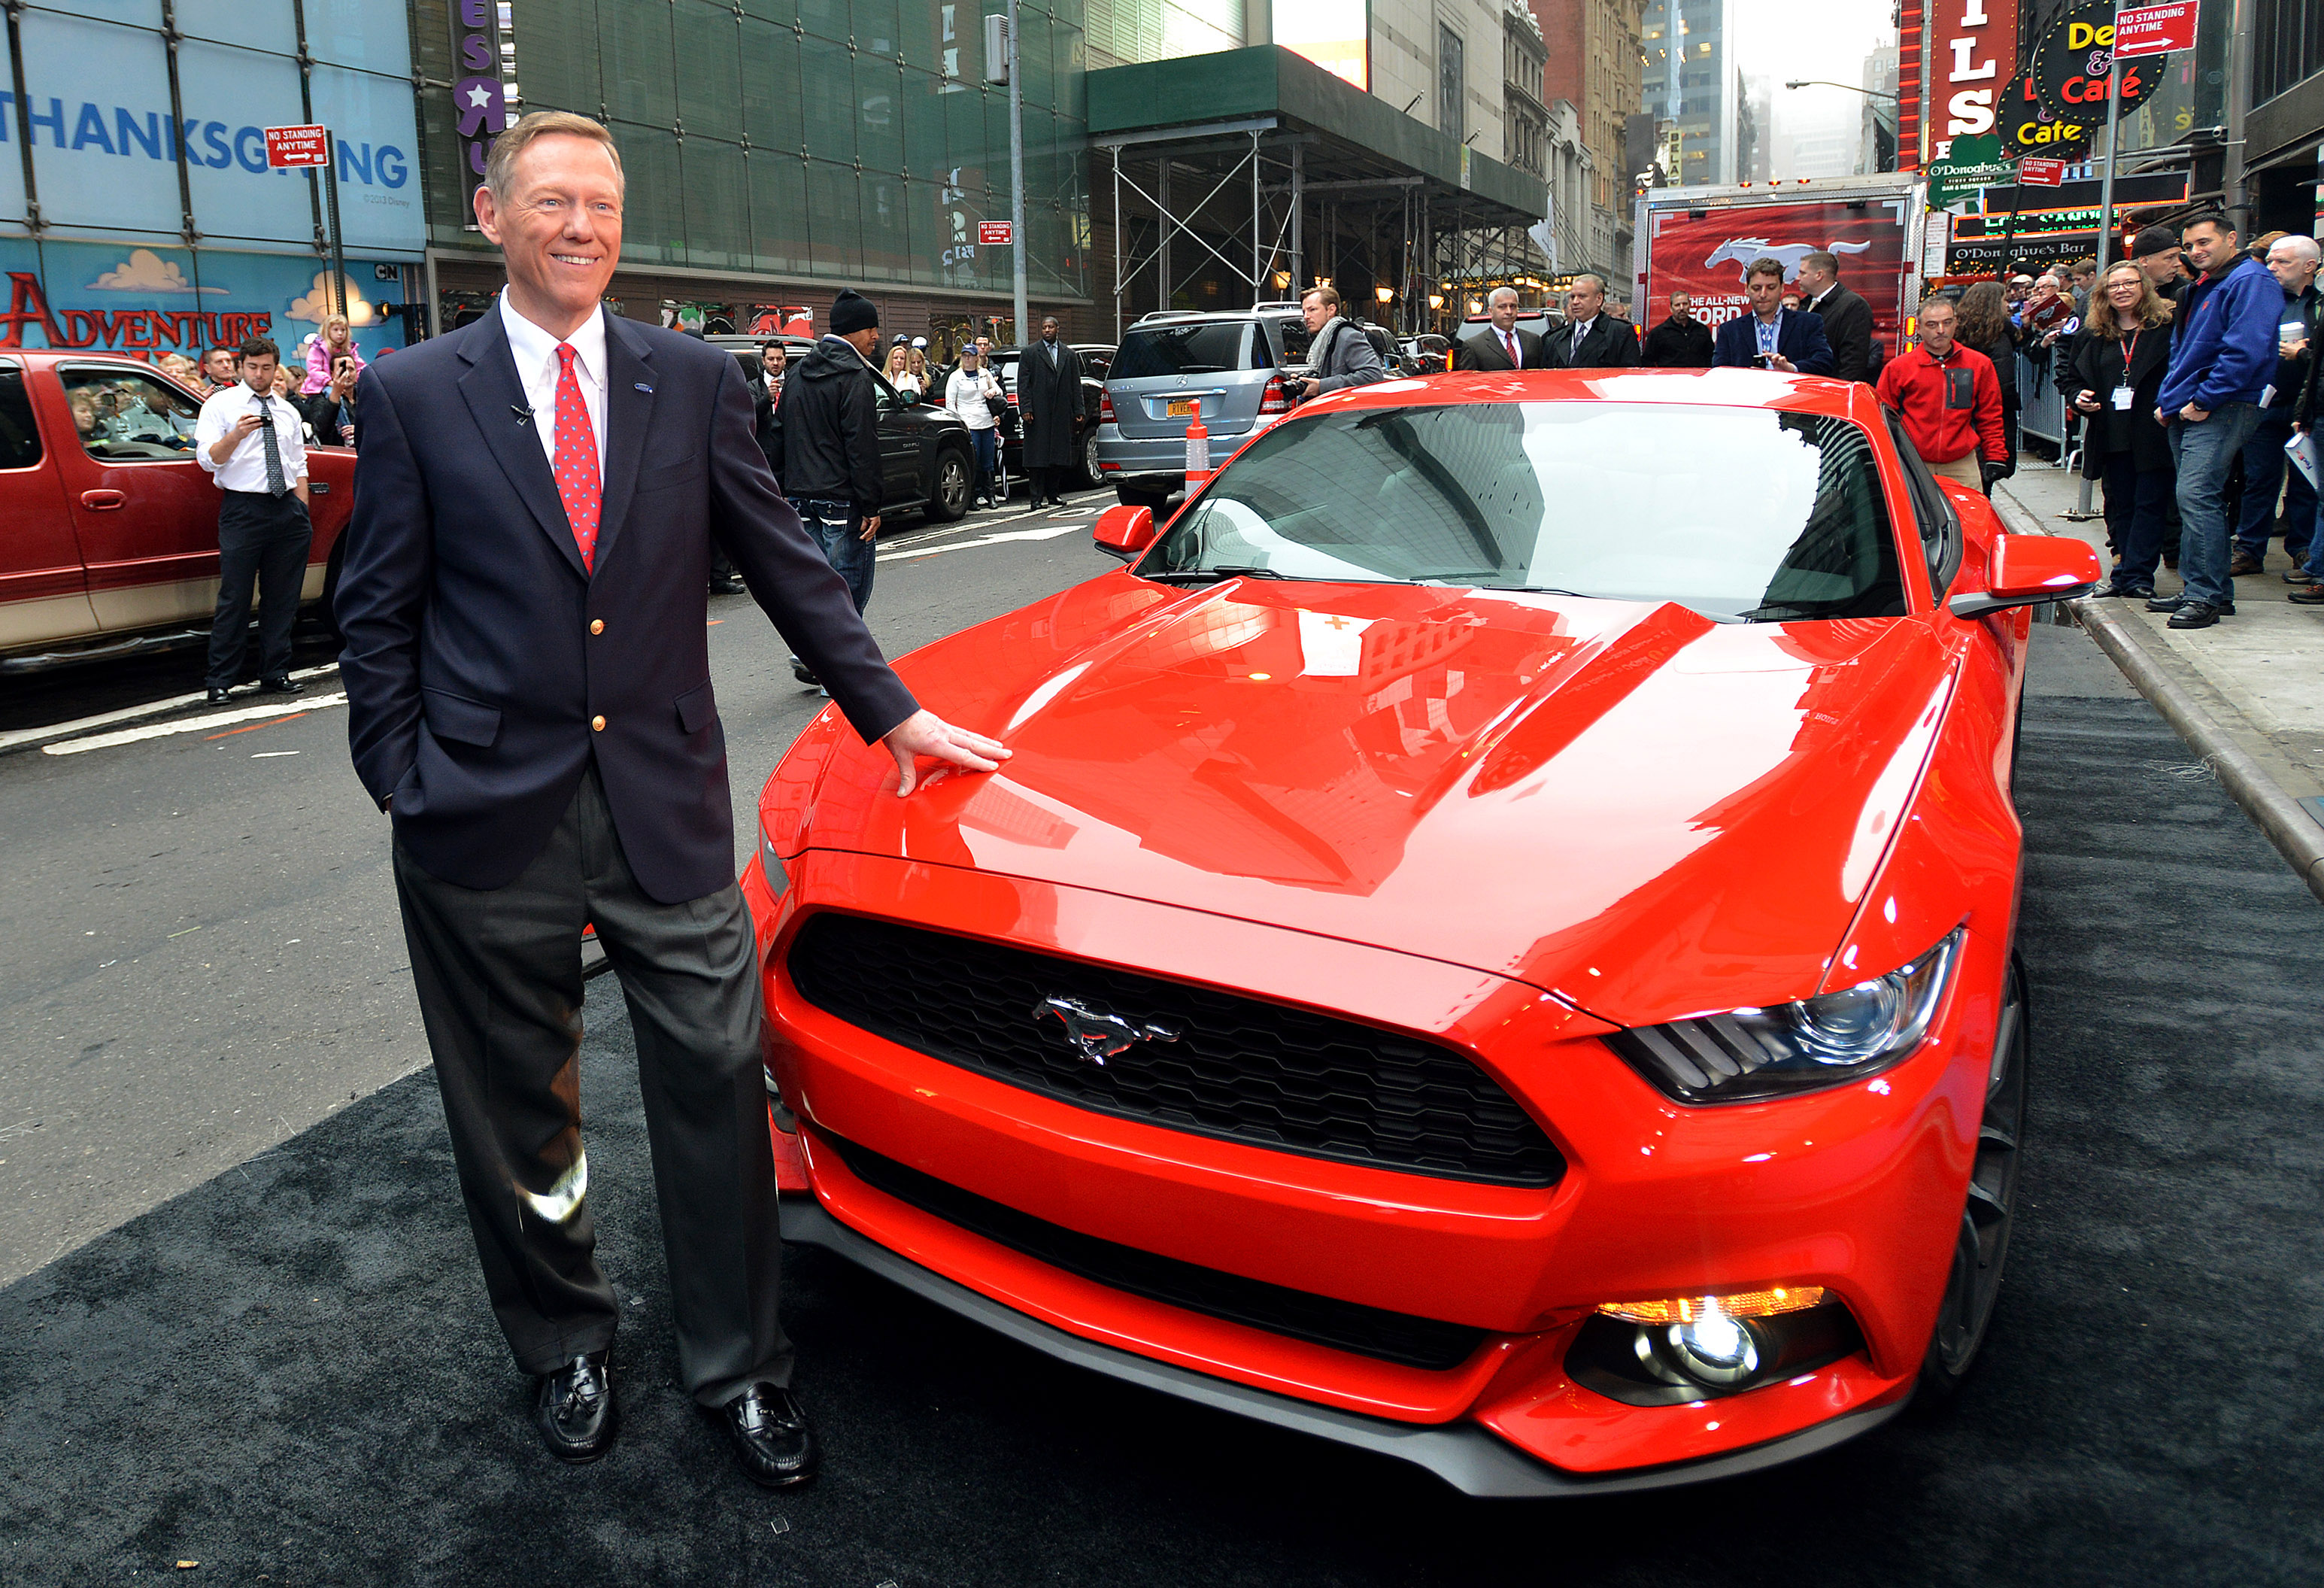 Ford CEO Alan Mulally presents the all-new Ford Mustang in Times